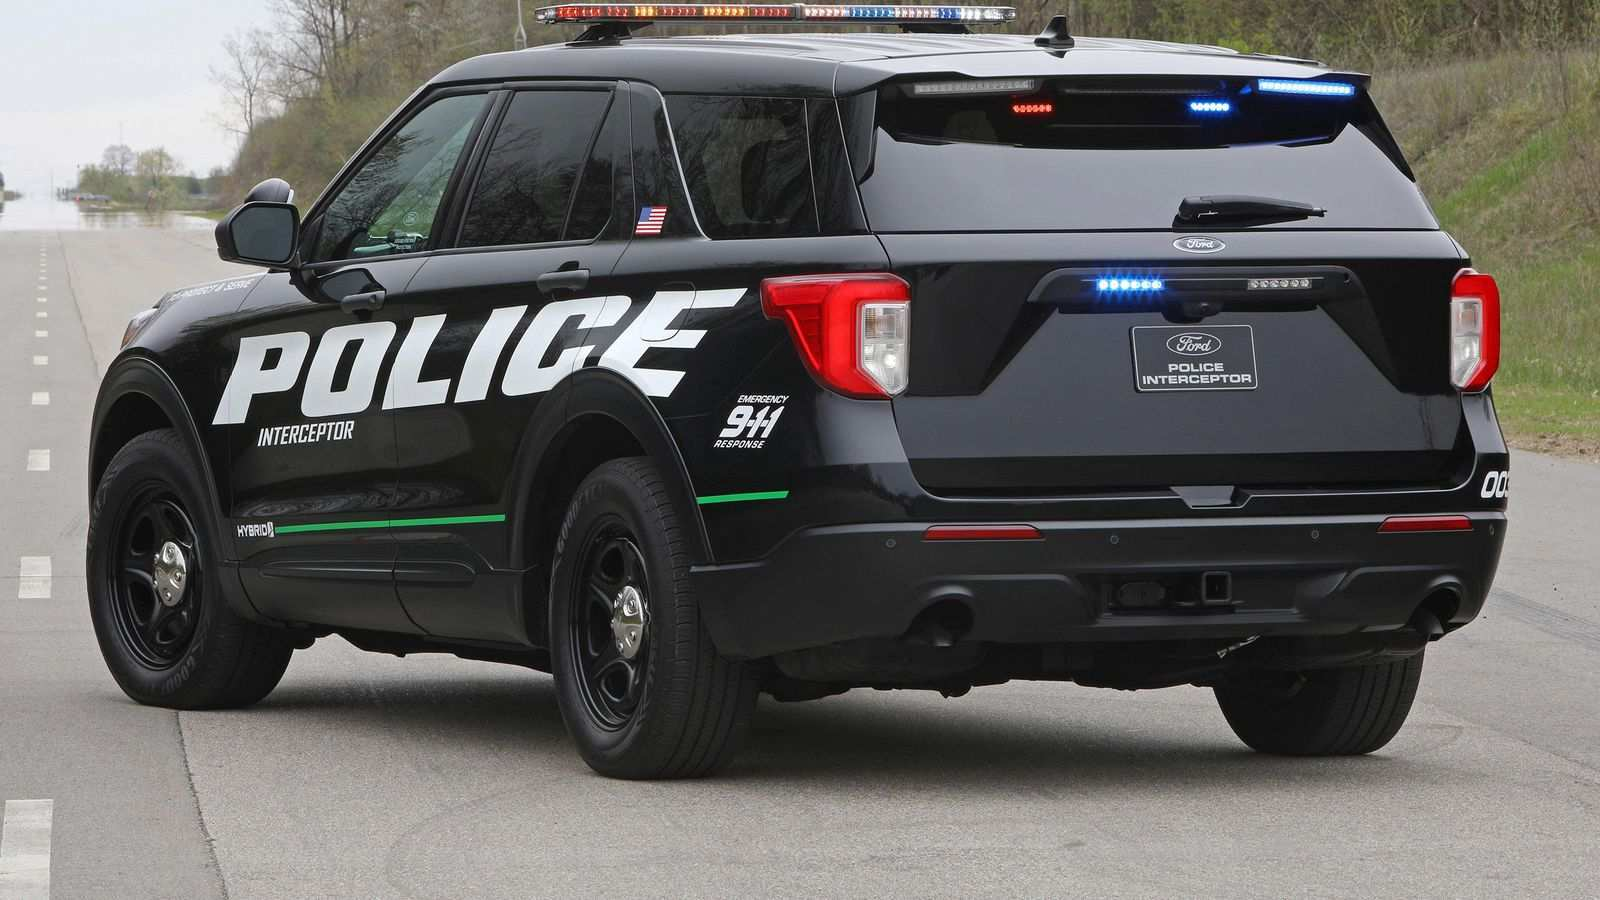 69 A 2020 Ford Police Interceptor Pricing